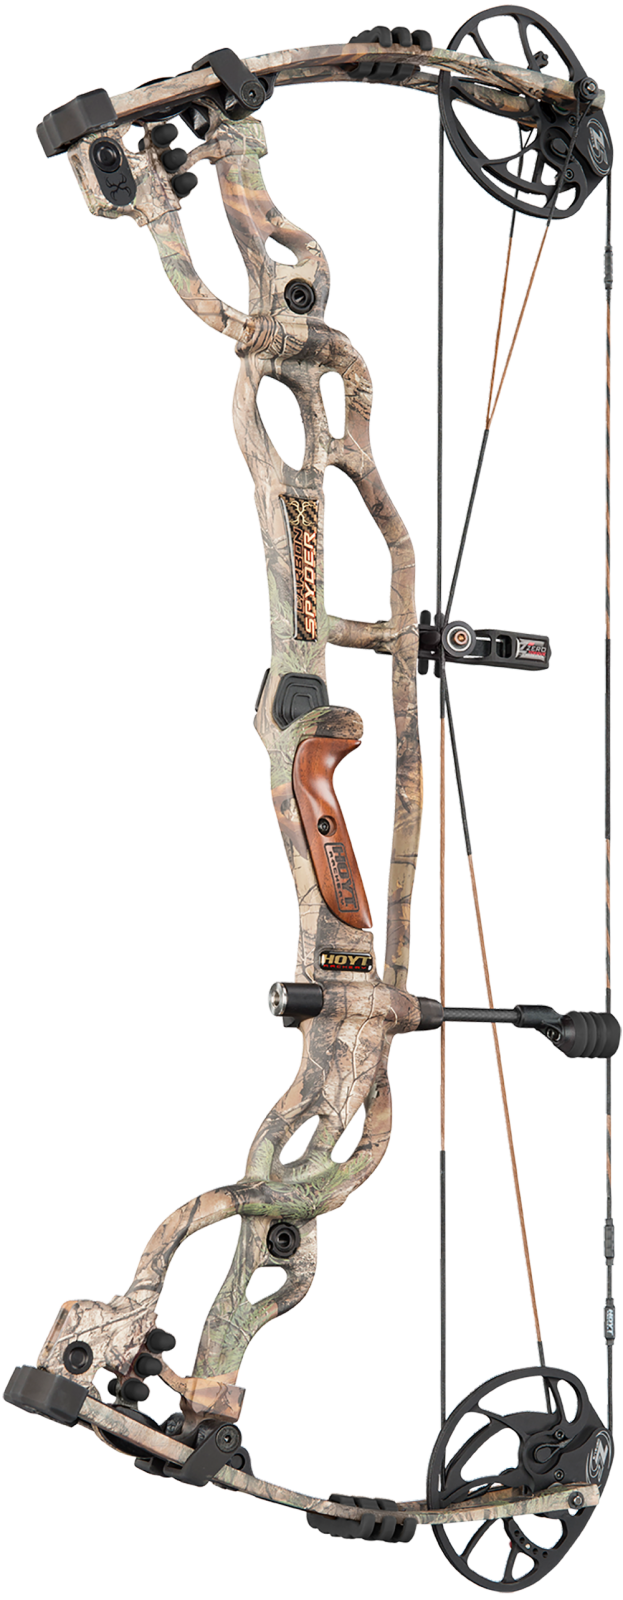 Hoyt Carbon Spyder ZT 34 Review - Compound Bow Inspection